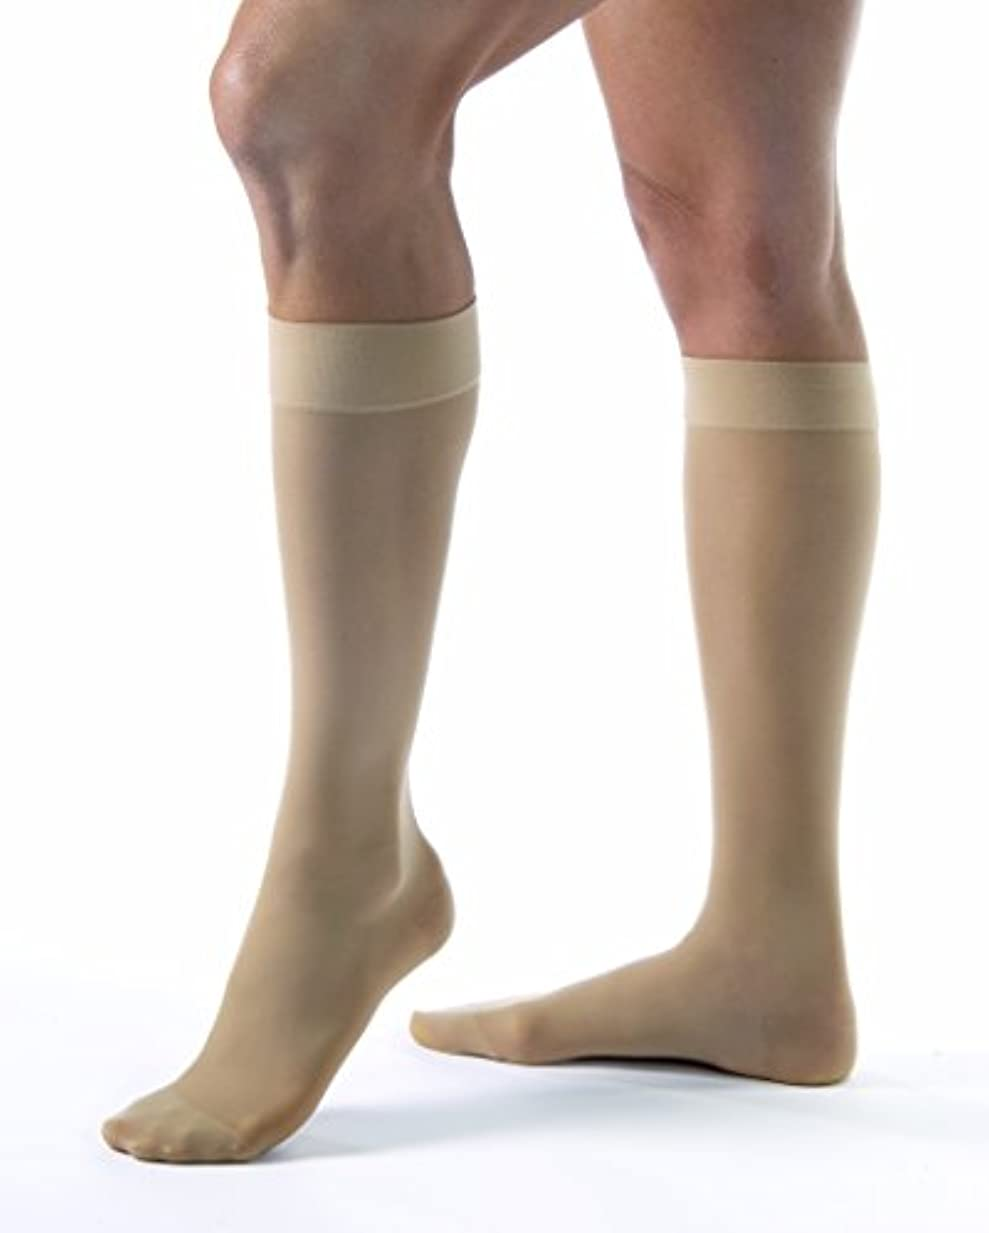 BSN Medicals 7768117 Jobst UltraSheer Knee High Compression Stockings, 20-30 Extra Large Full Calf